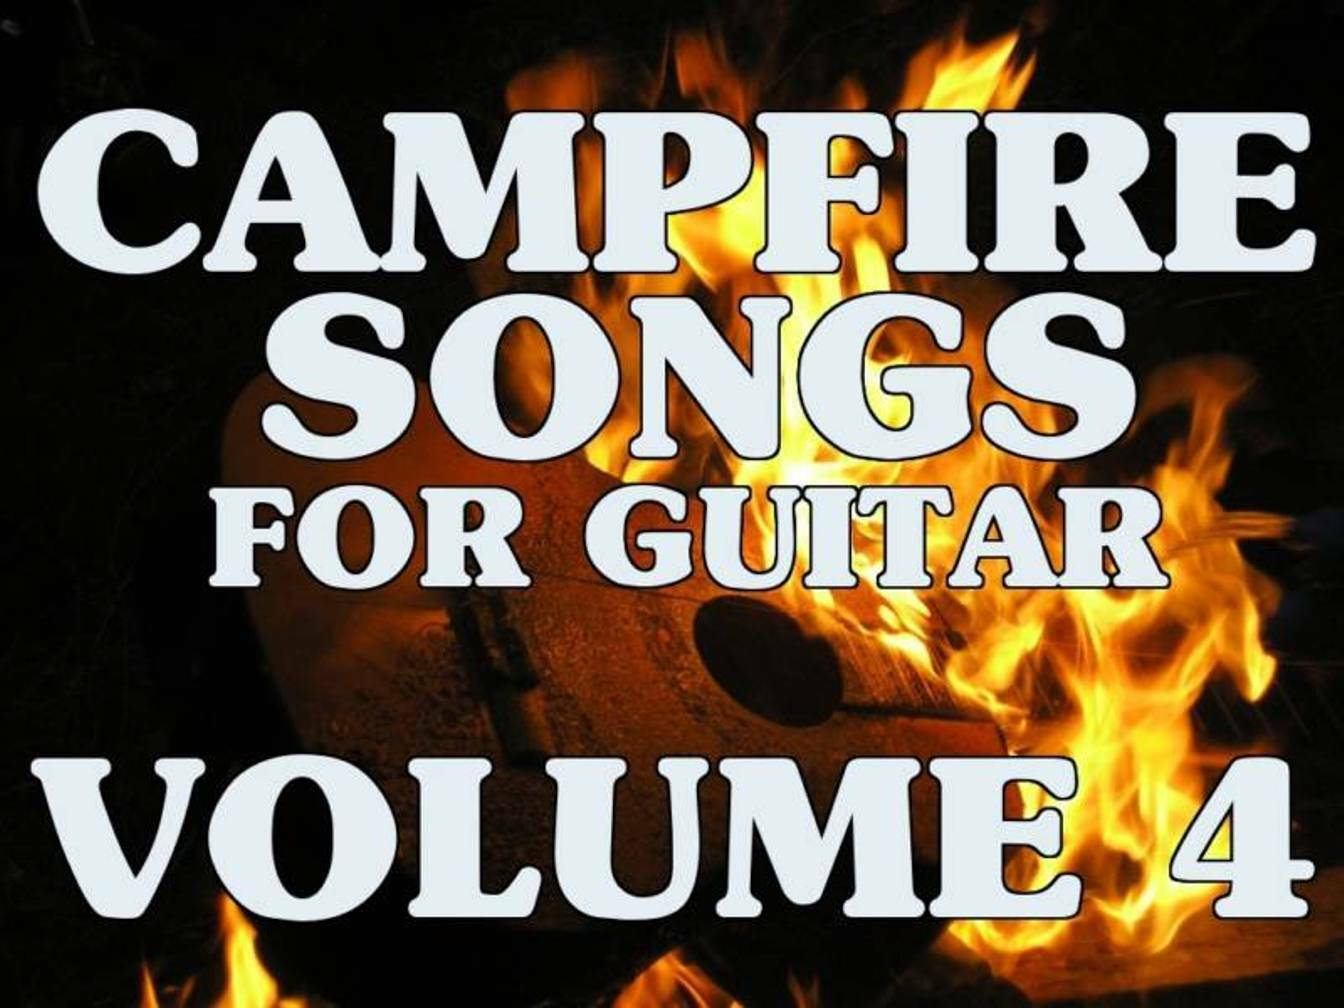 Campfire Songs For Guitar Volume 4 Dvd Lessons Ccr Buddy Holly Zz